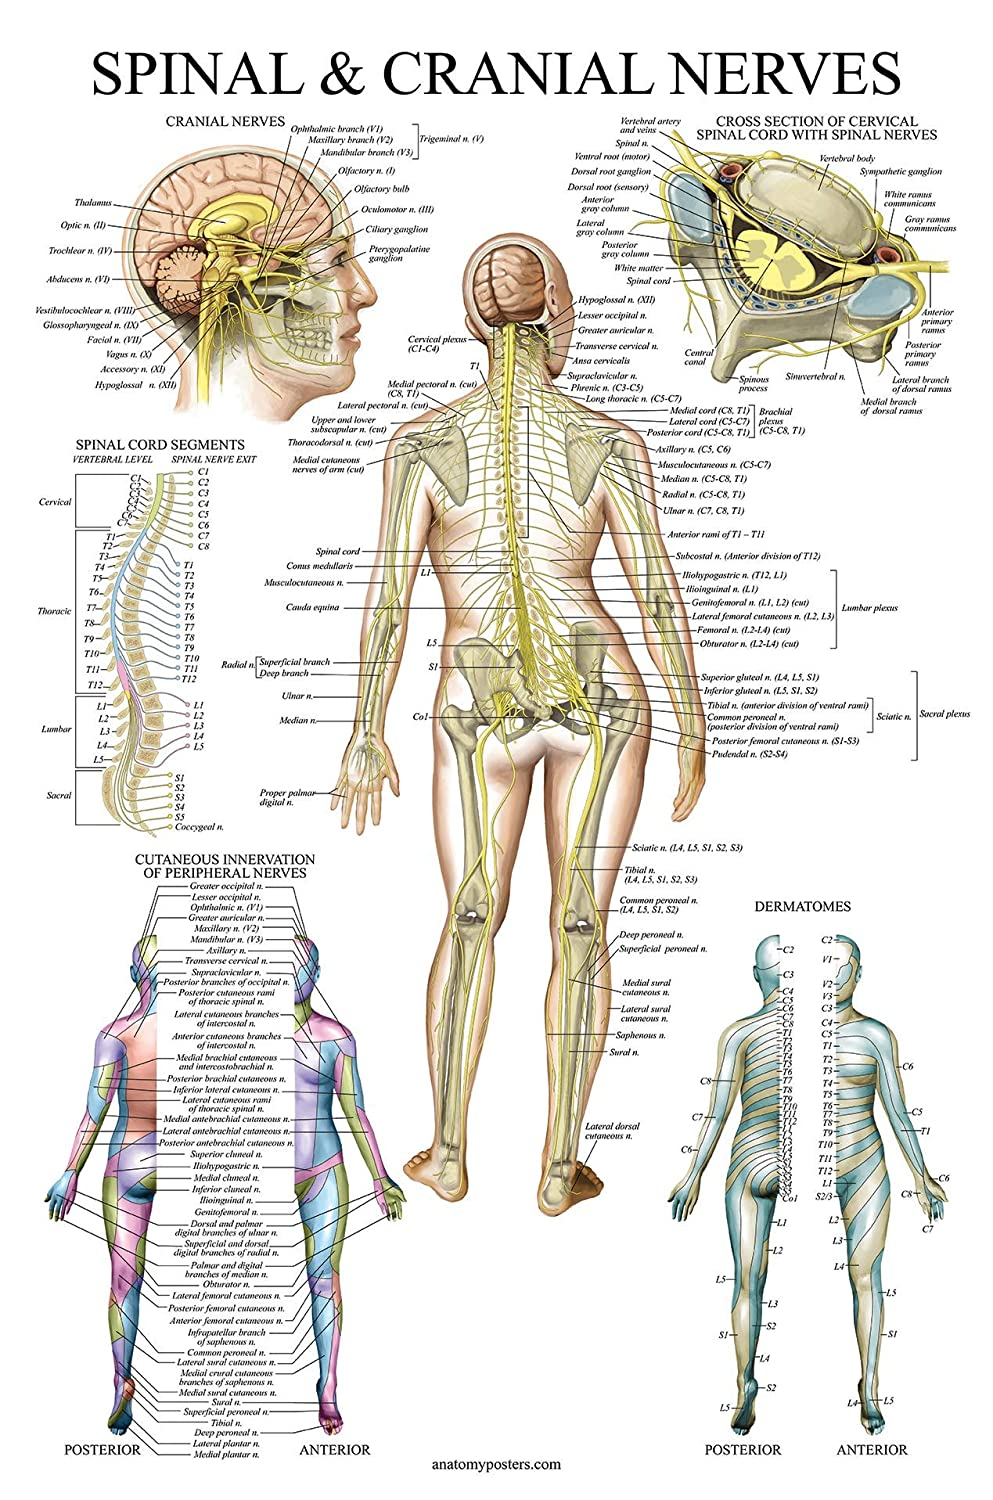 Spinal Nerves Anatomical Chart - Spine and Cranial Nervous System Anatomy Poster (with Dermatomes) (Laminated, 18 x 27)